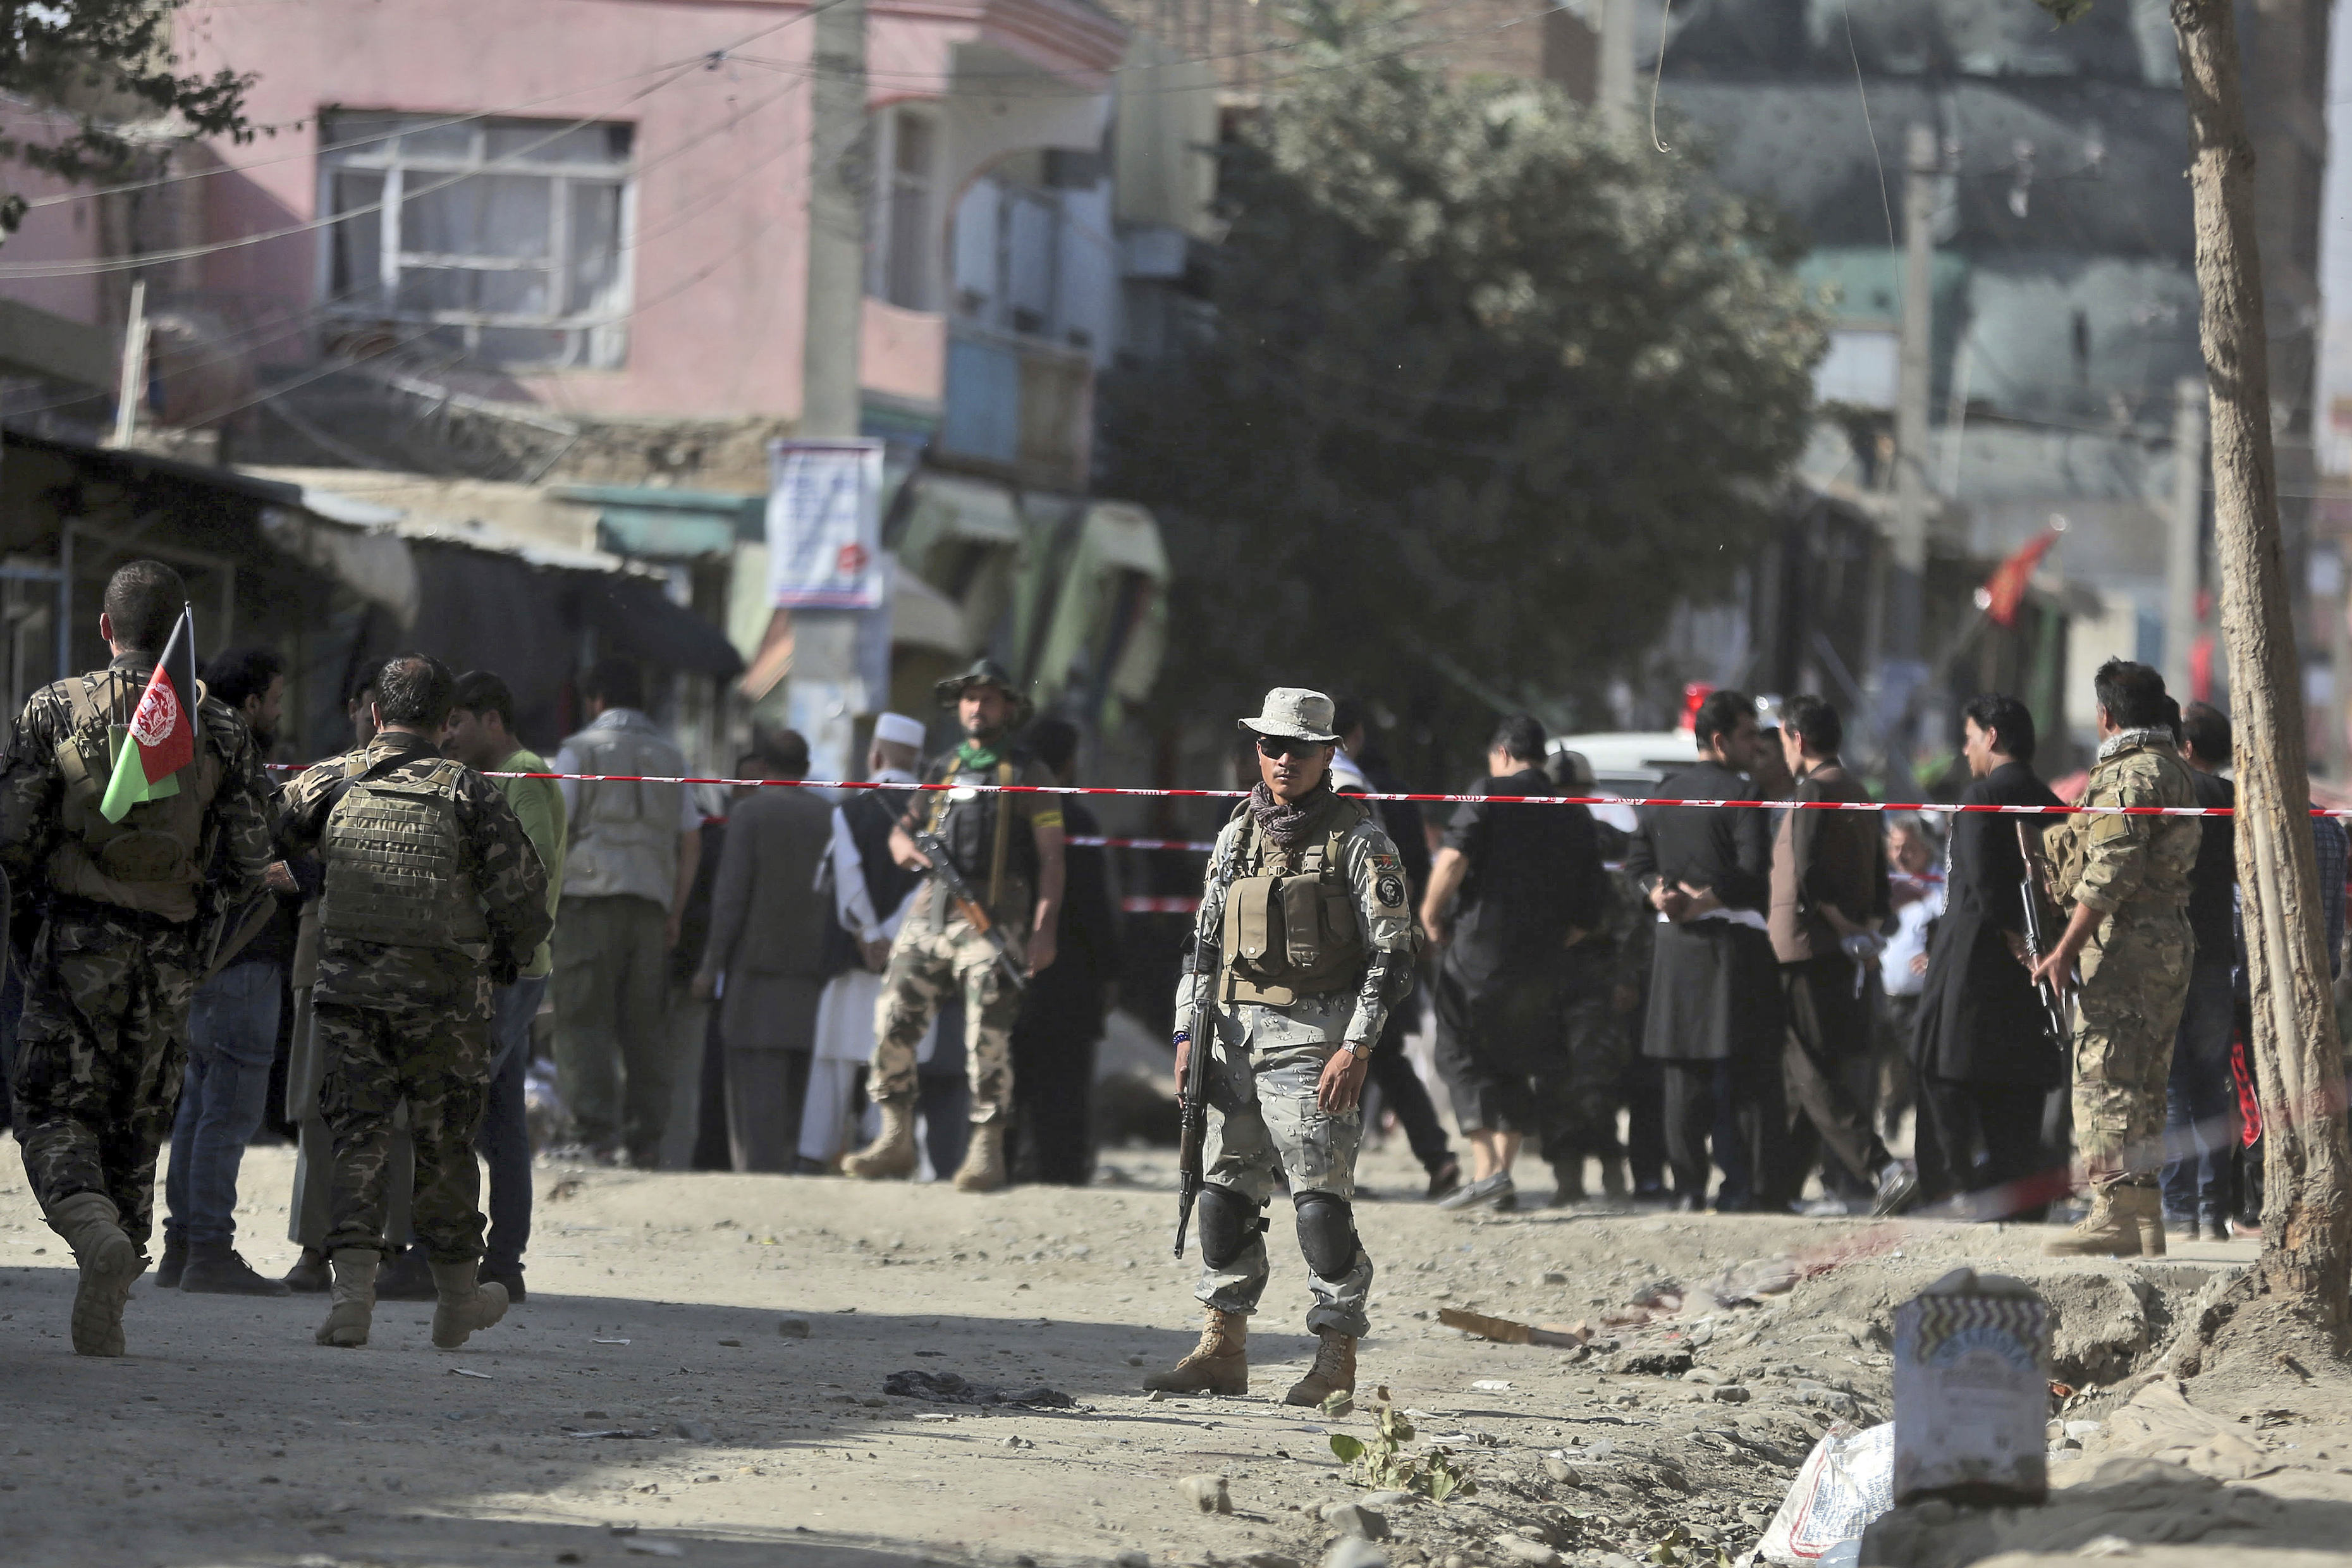 Blast hits Afghan capital near Shi'ite mosque, causing casualties